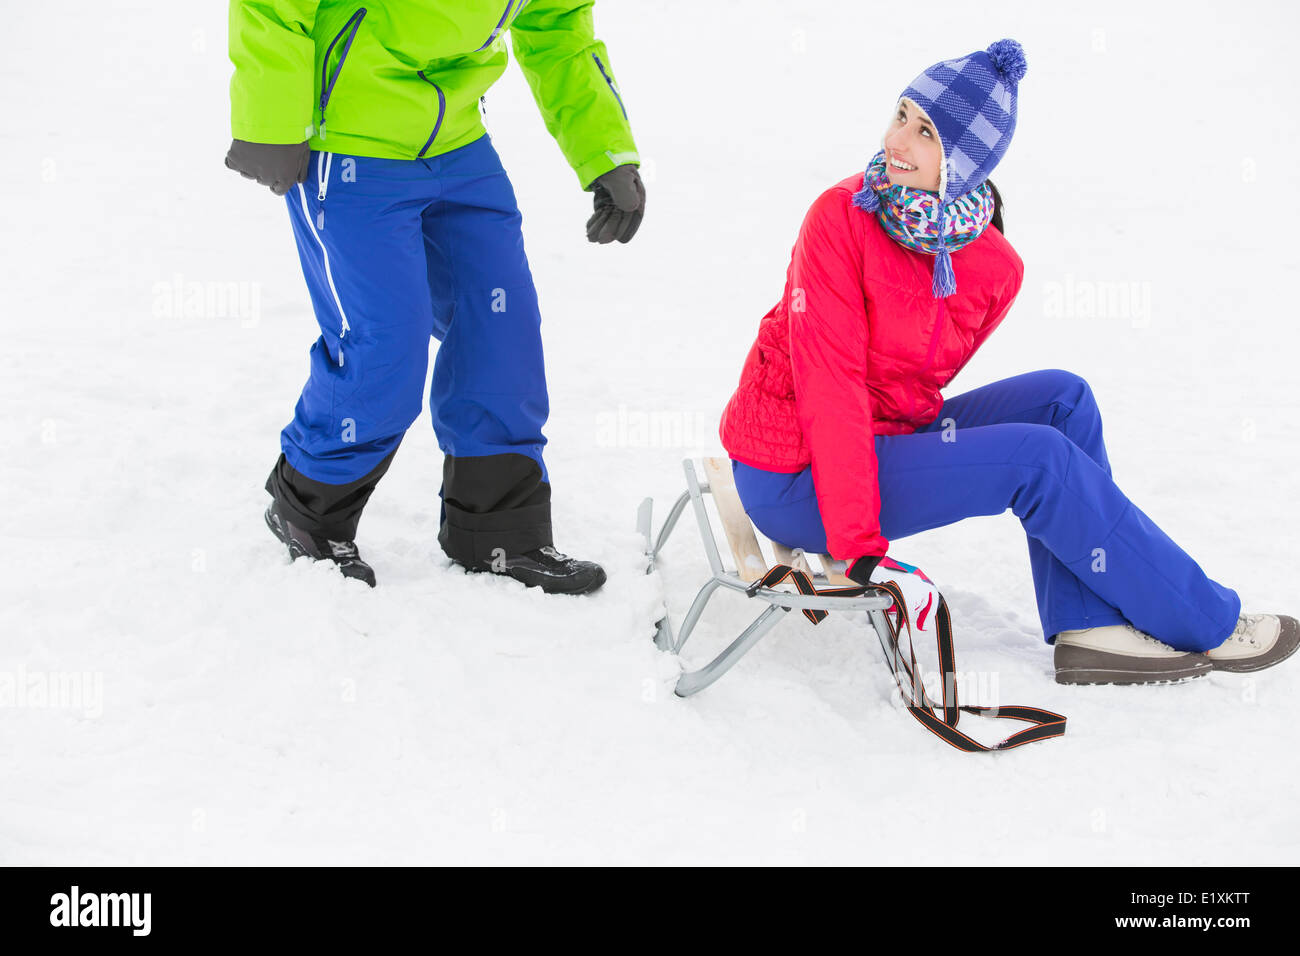 Happy young woman sitting on sled while looking at man in snow Stock Photo